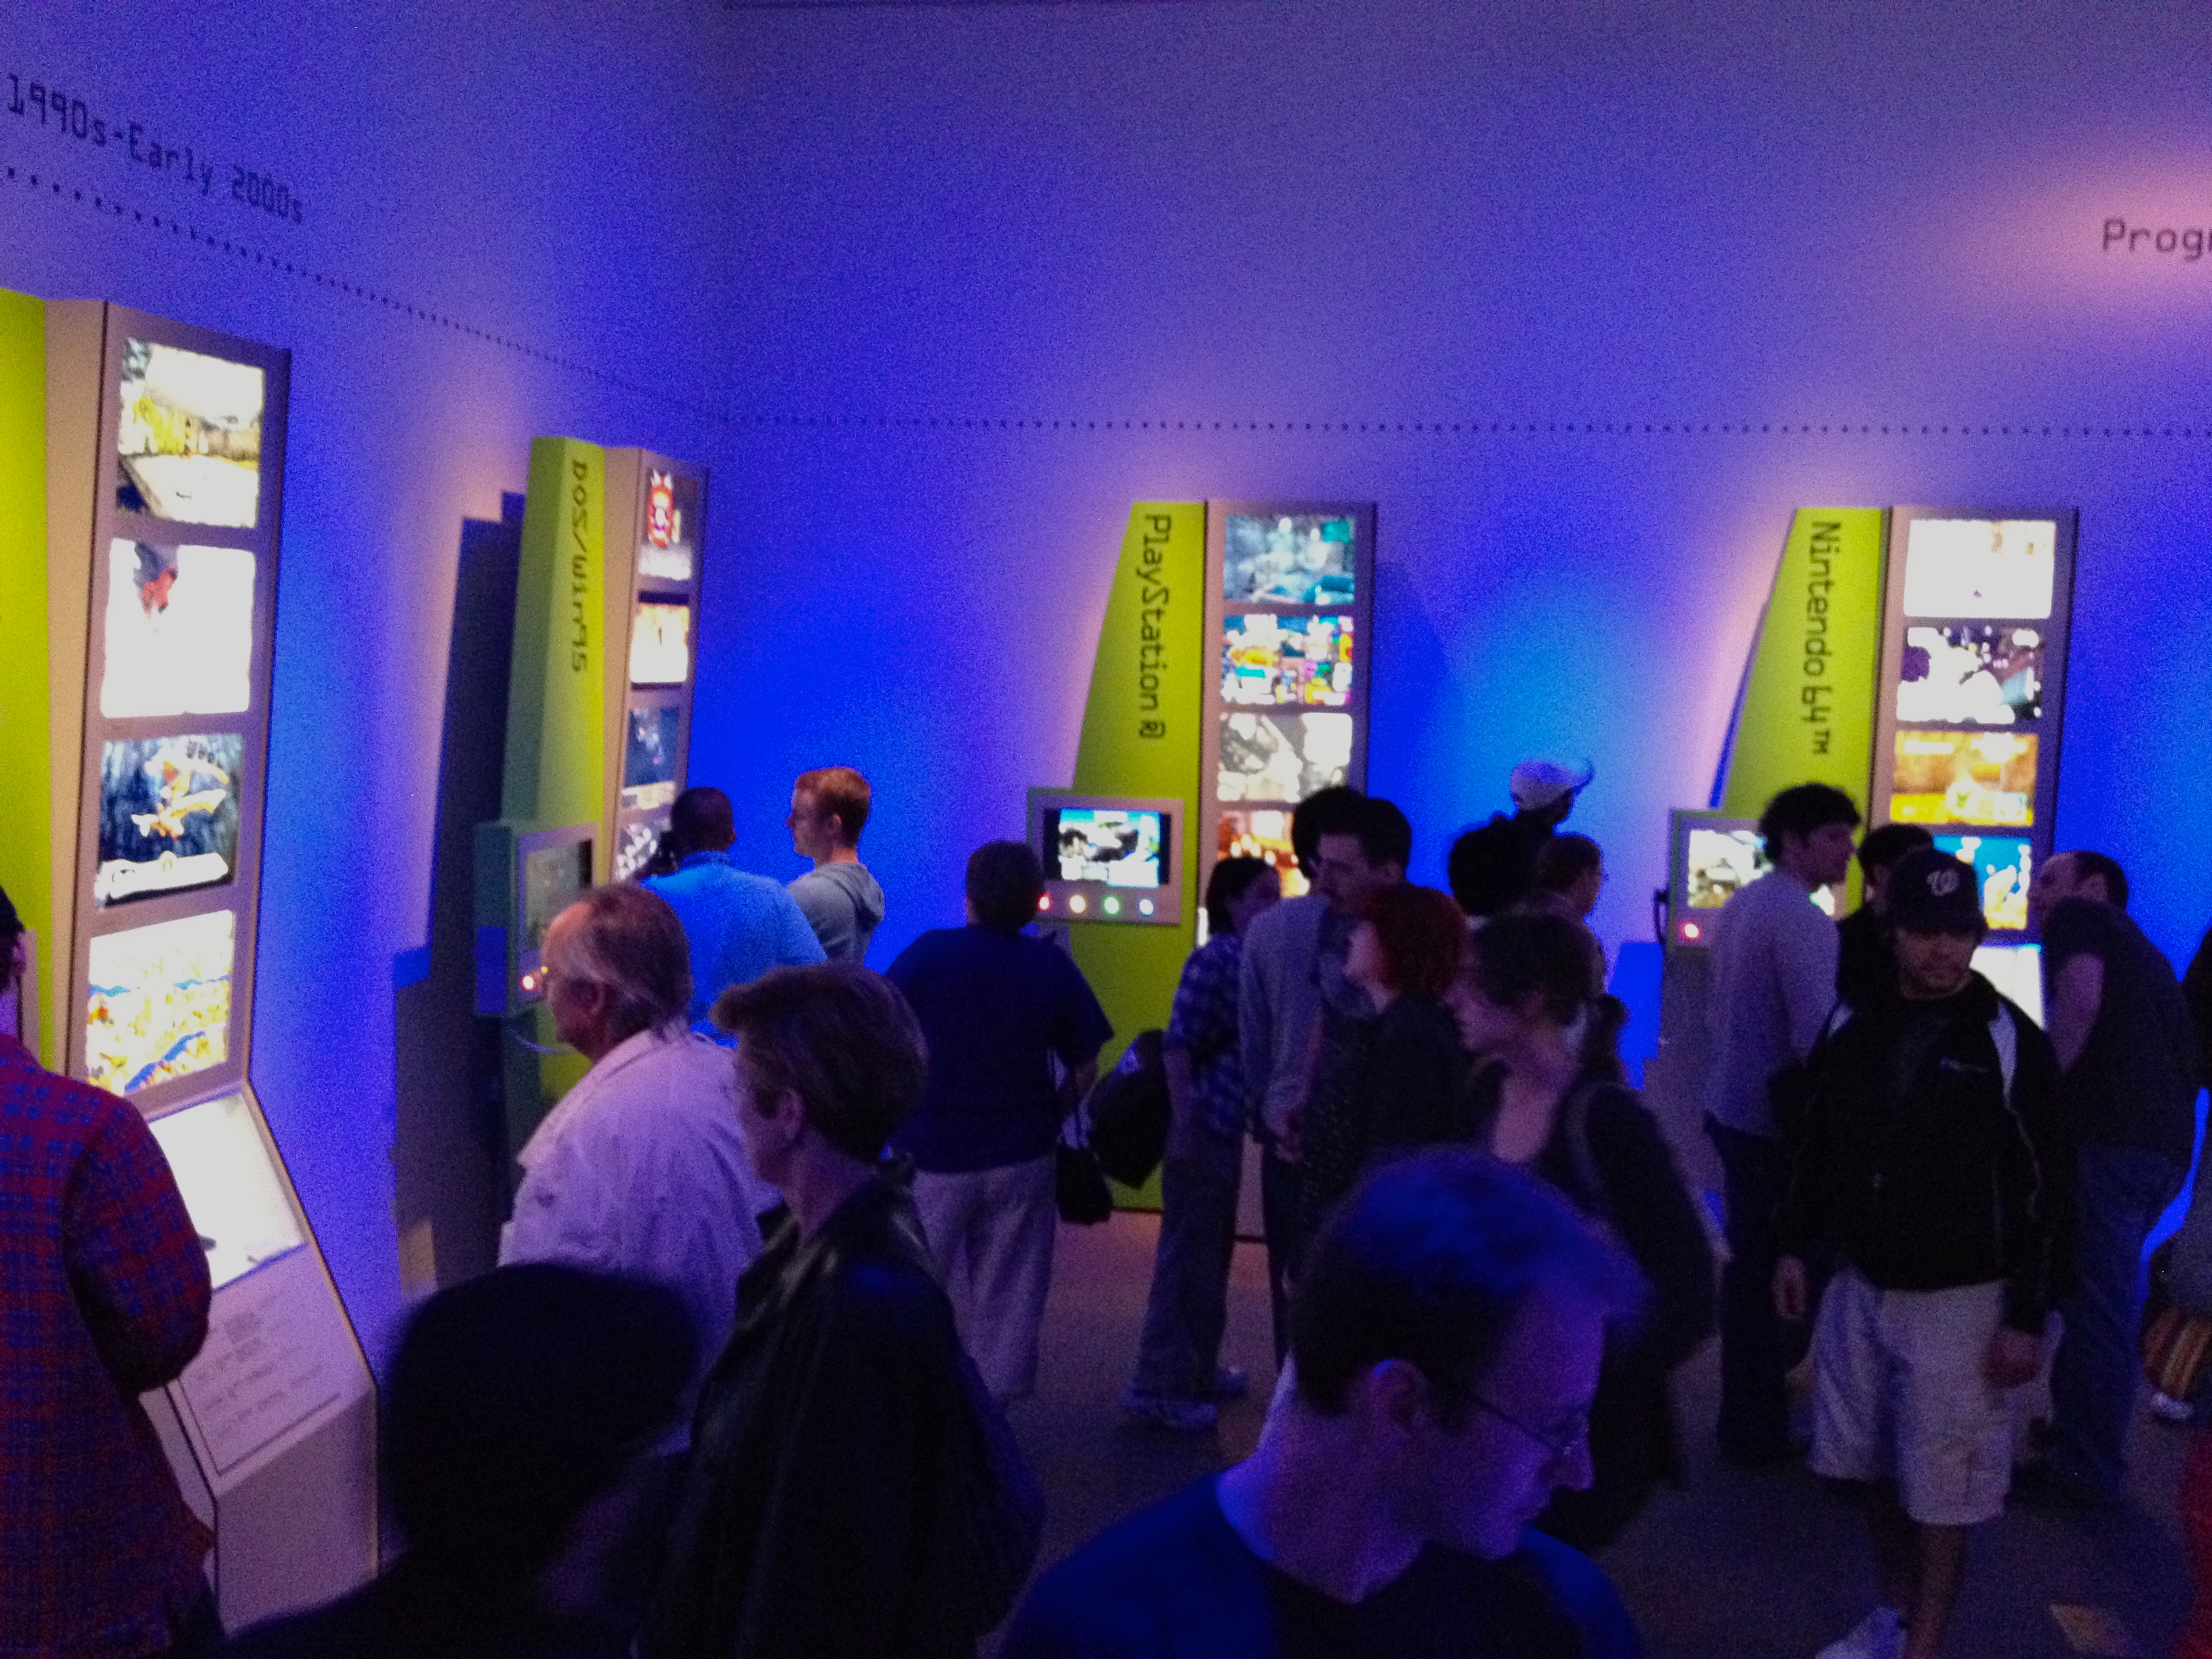 The Art of Video Games 2012 (6848246182).jpg Exhibit at the Smithsonian American Art Museum (March 16, 2012 - September 30, 2012) Photos from